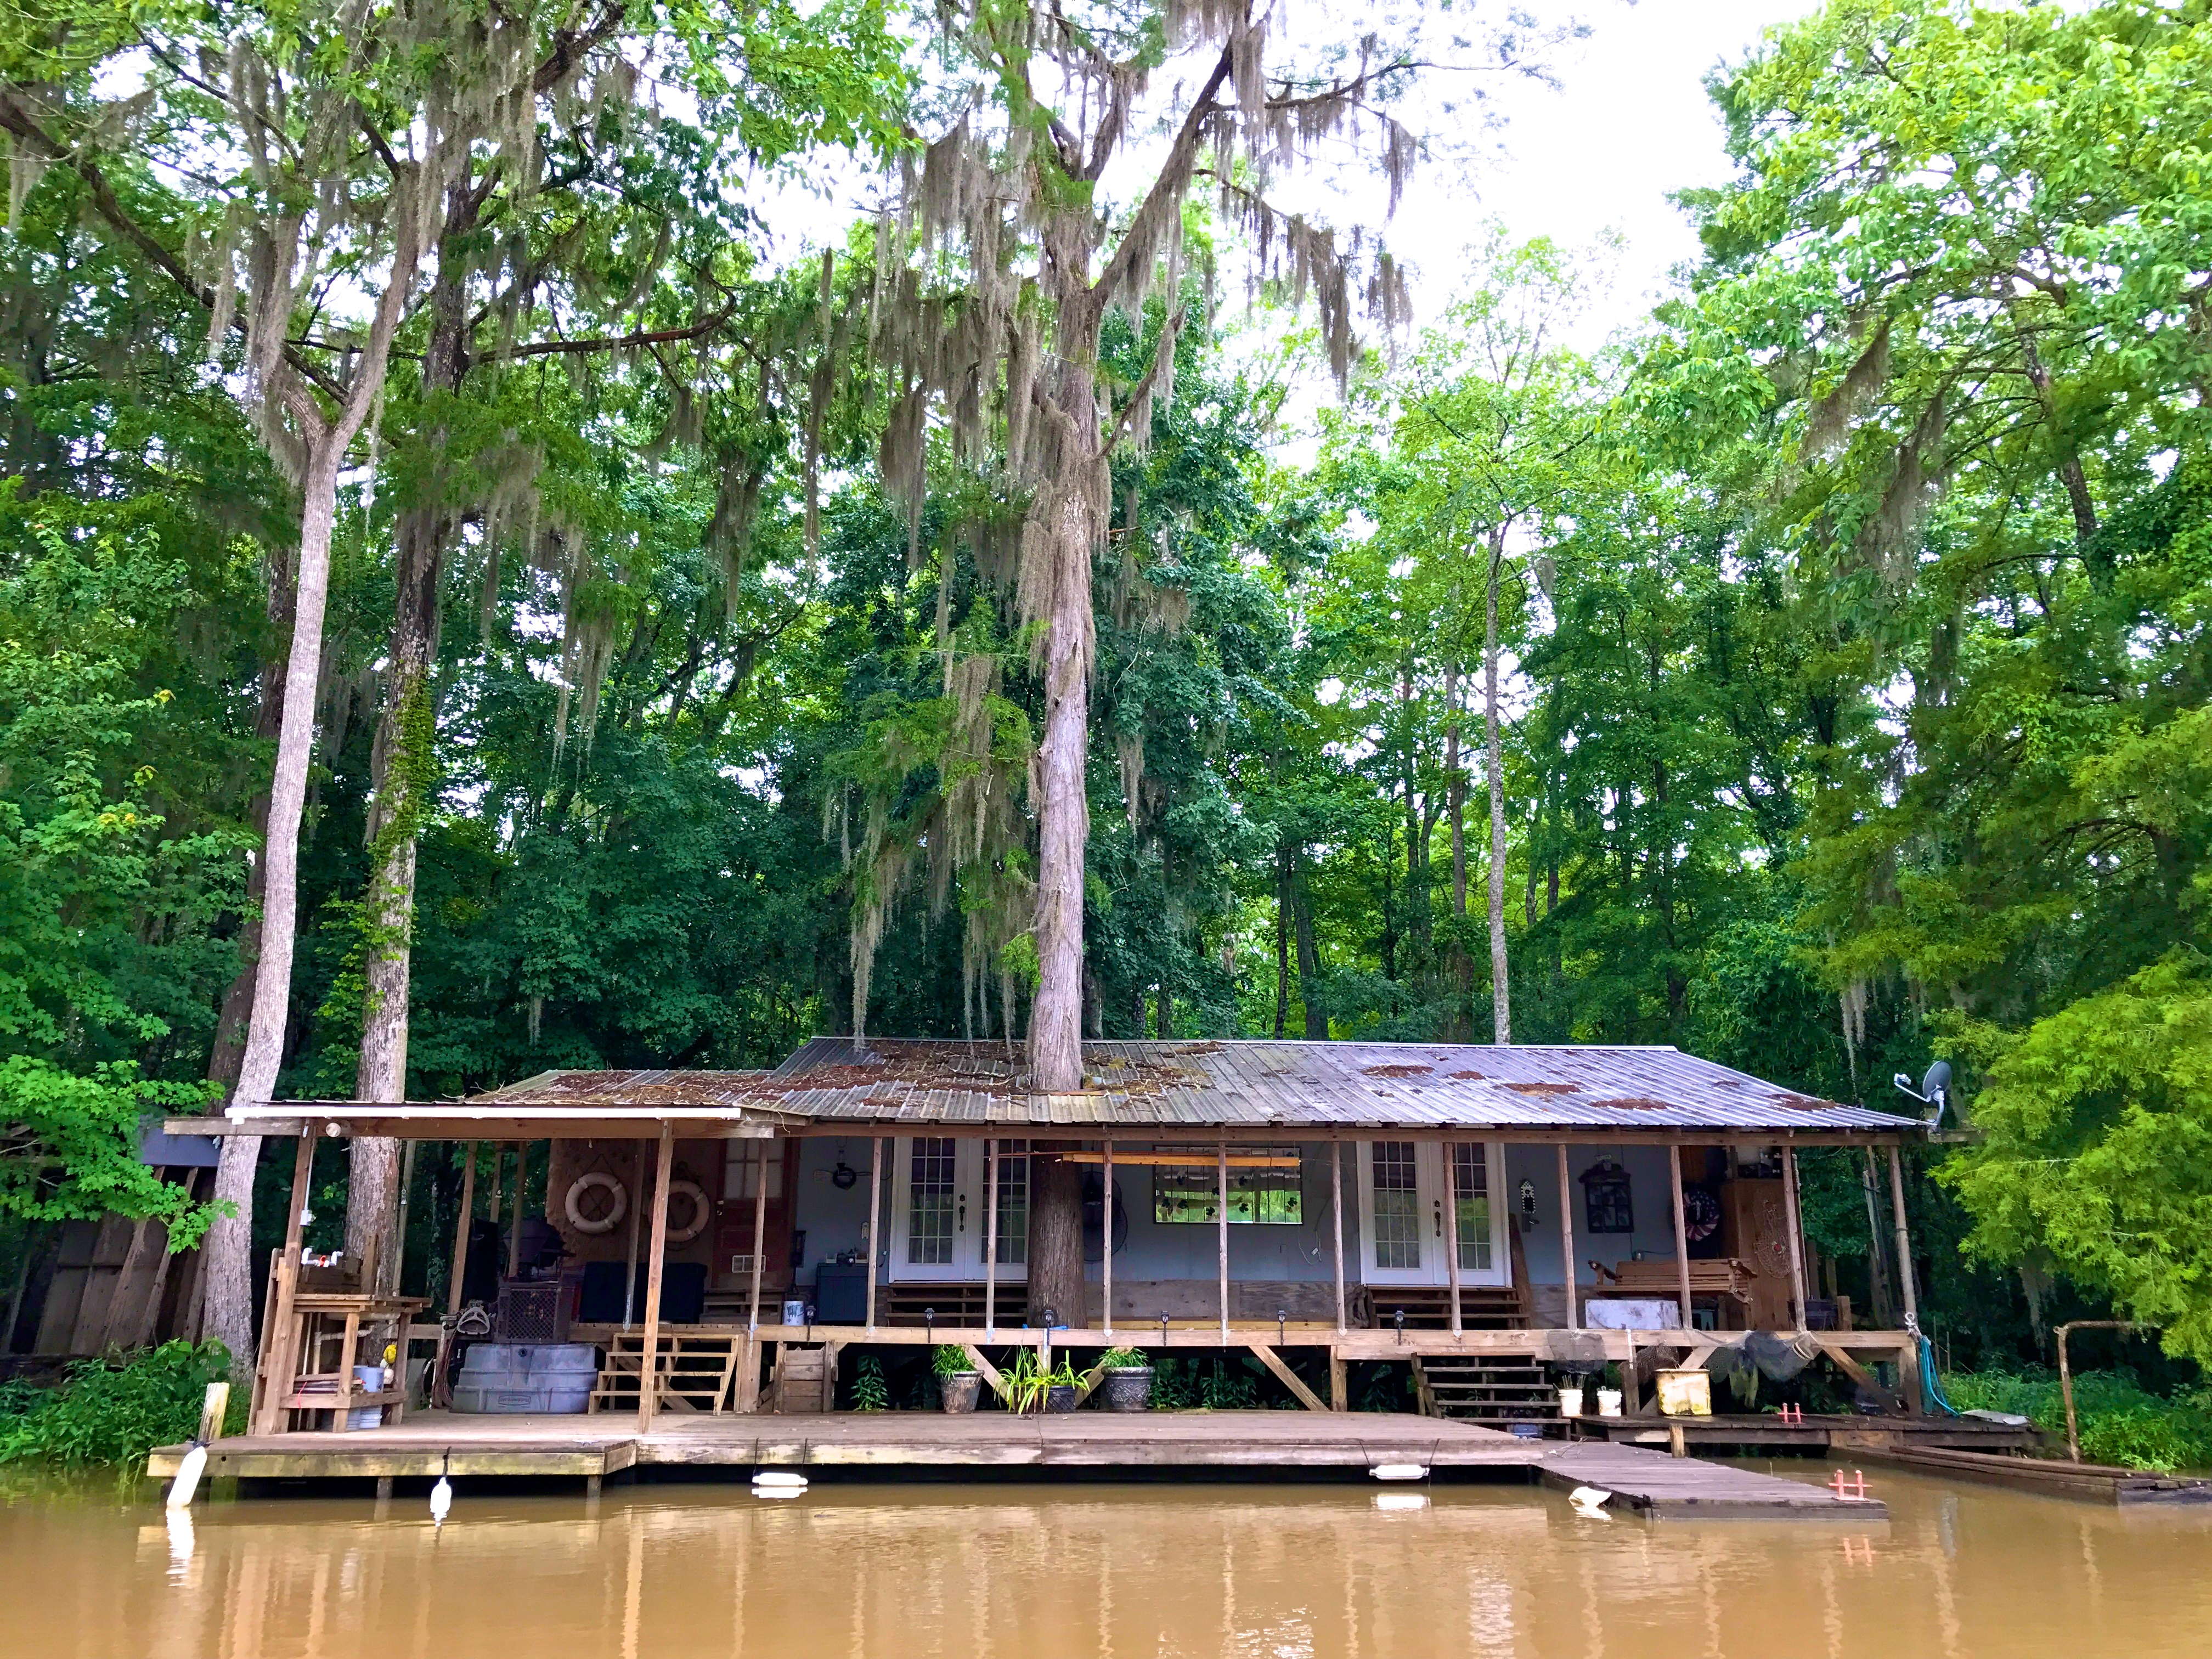 A house on the river with a tree growing through it